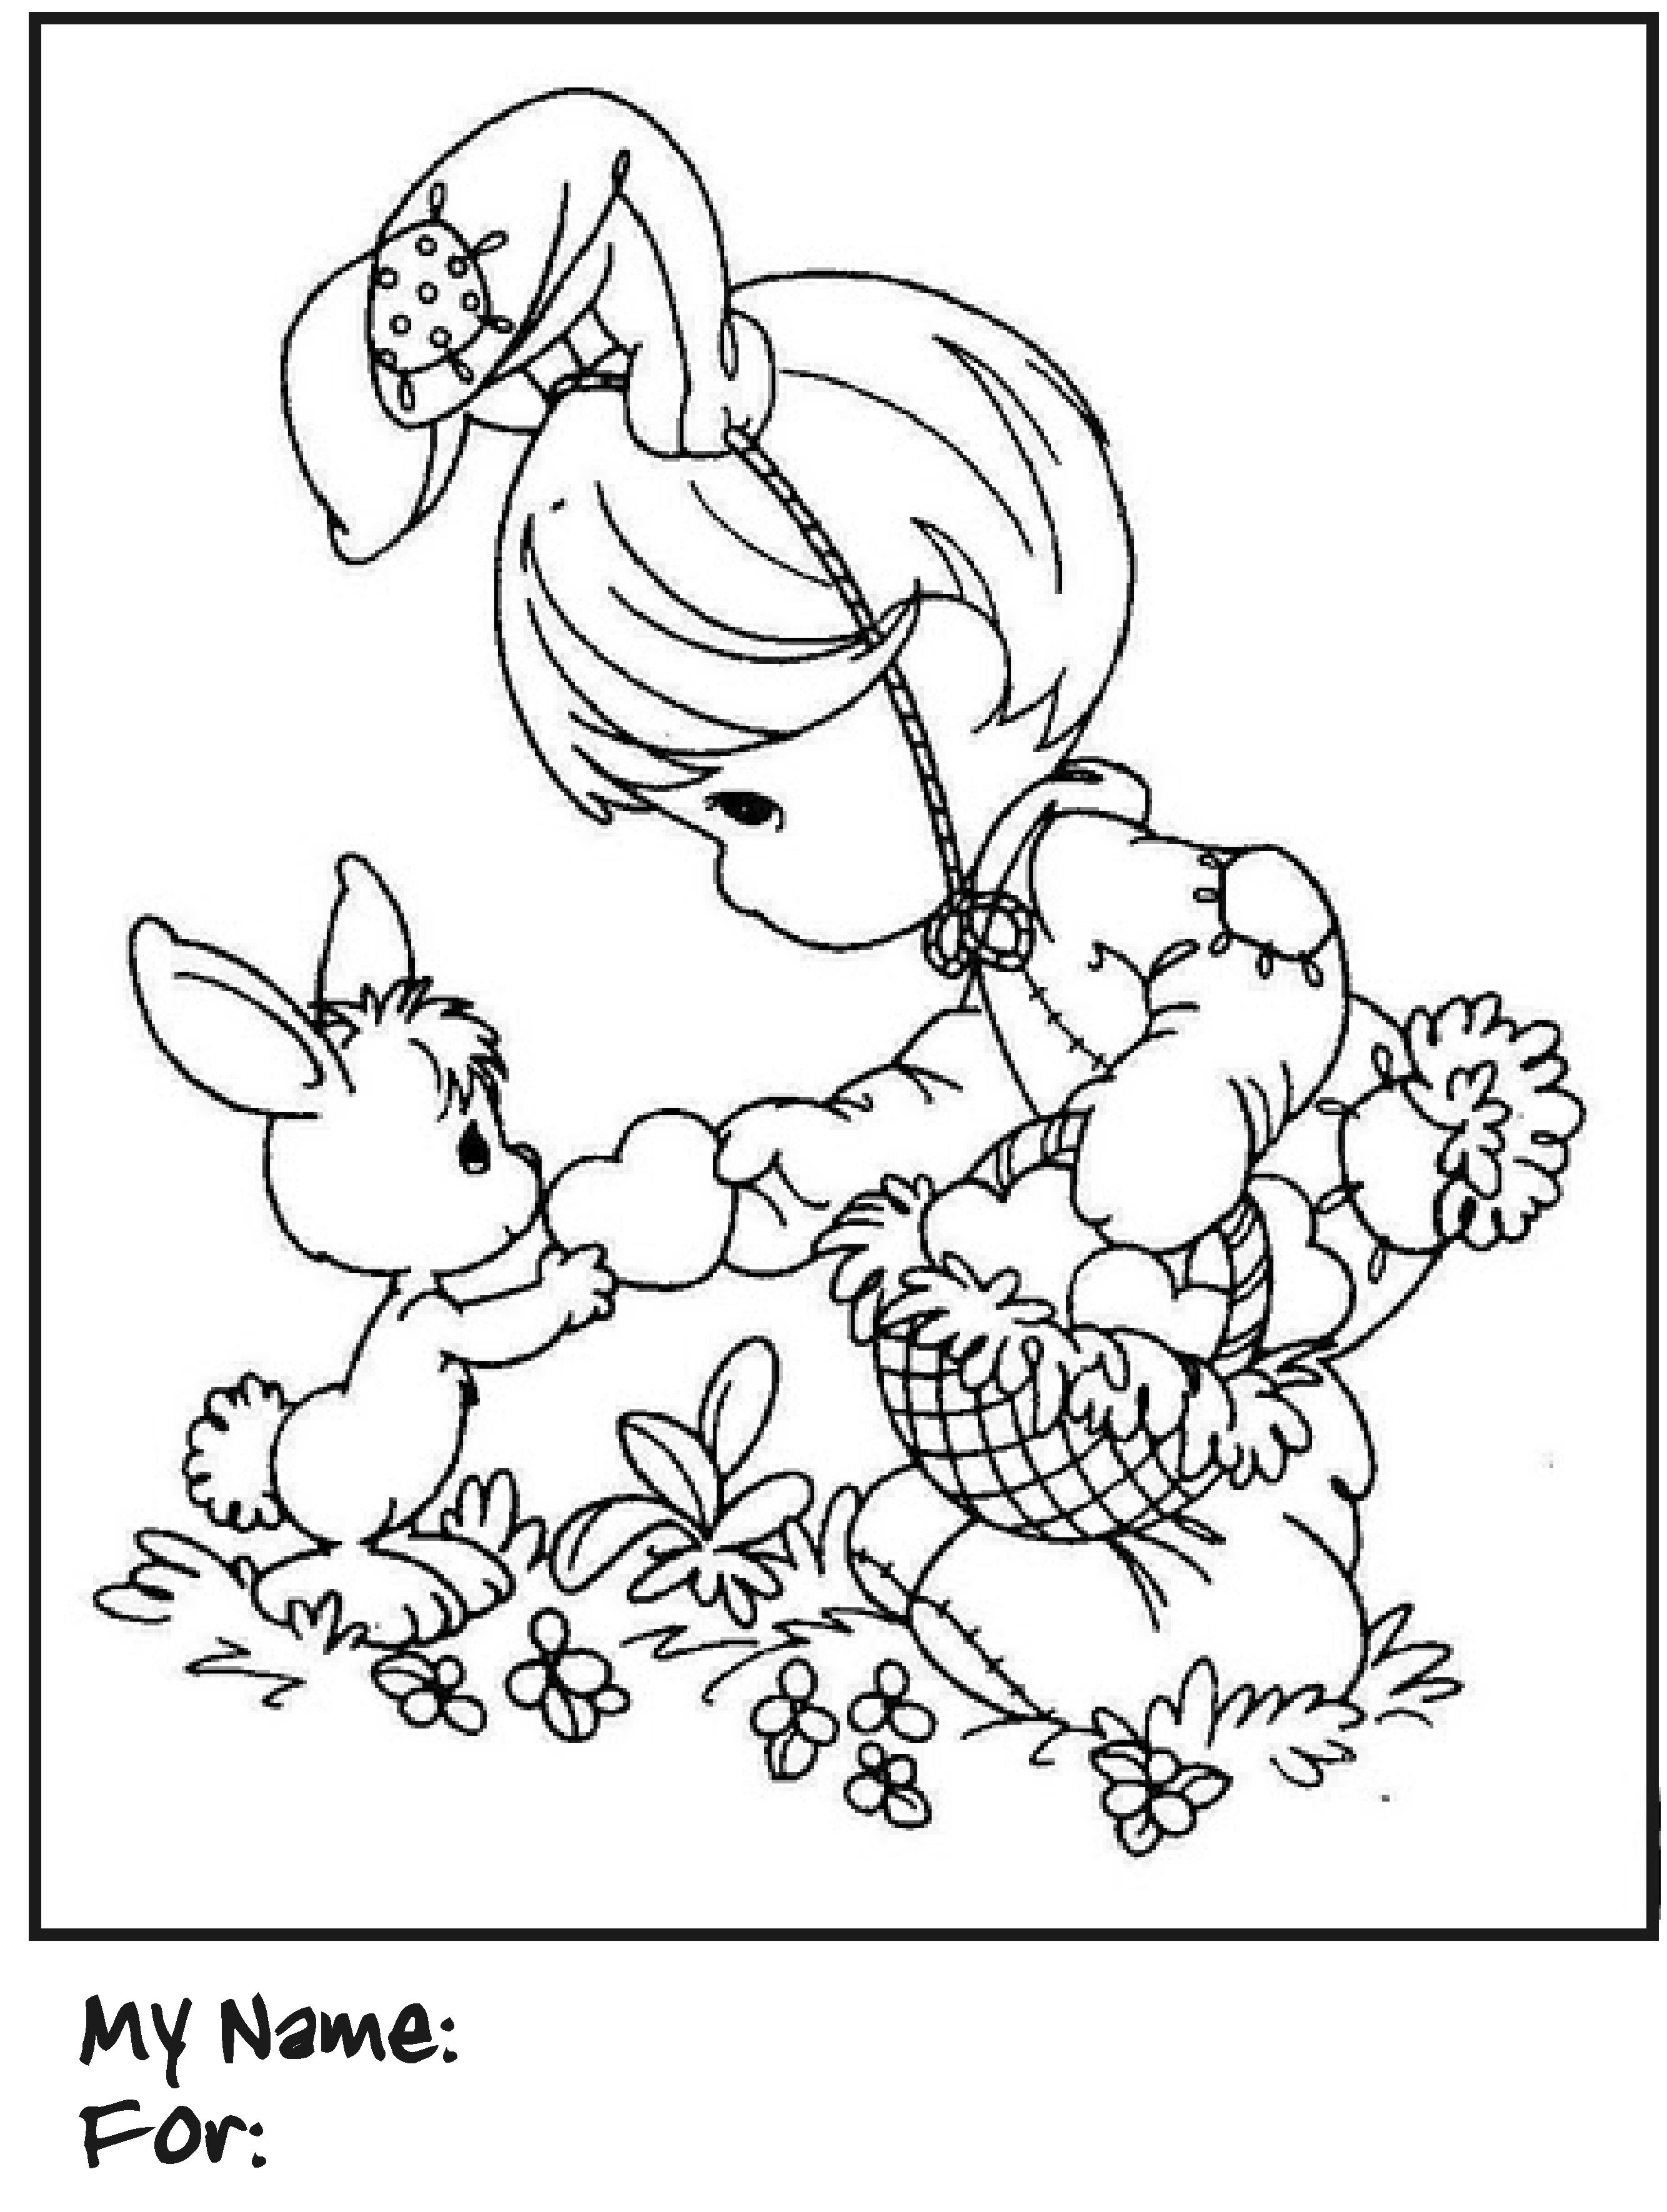 Image Detail For Have Fun Coloring This Precious Moments Easter Bunny Coloring Page